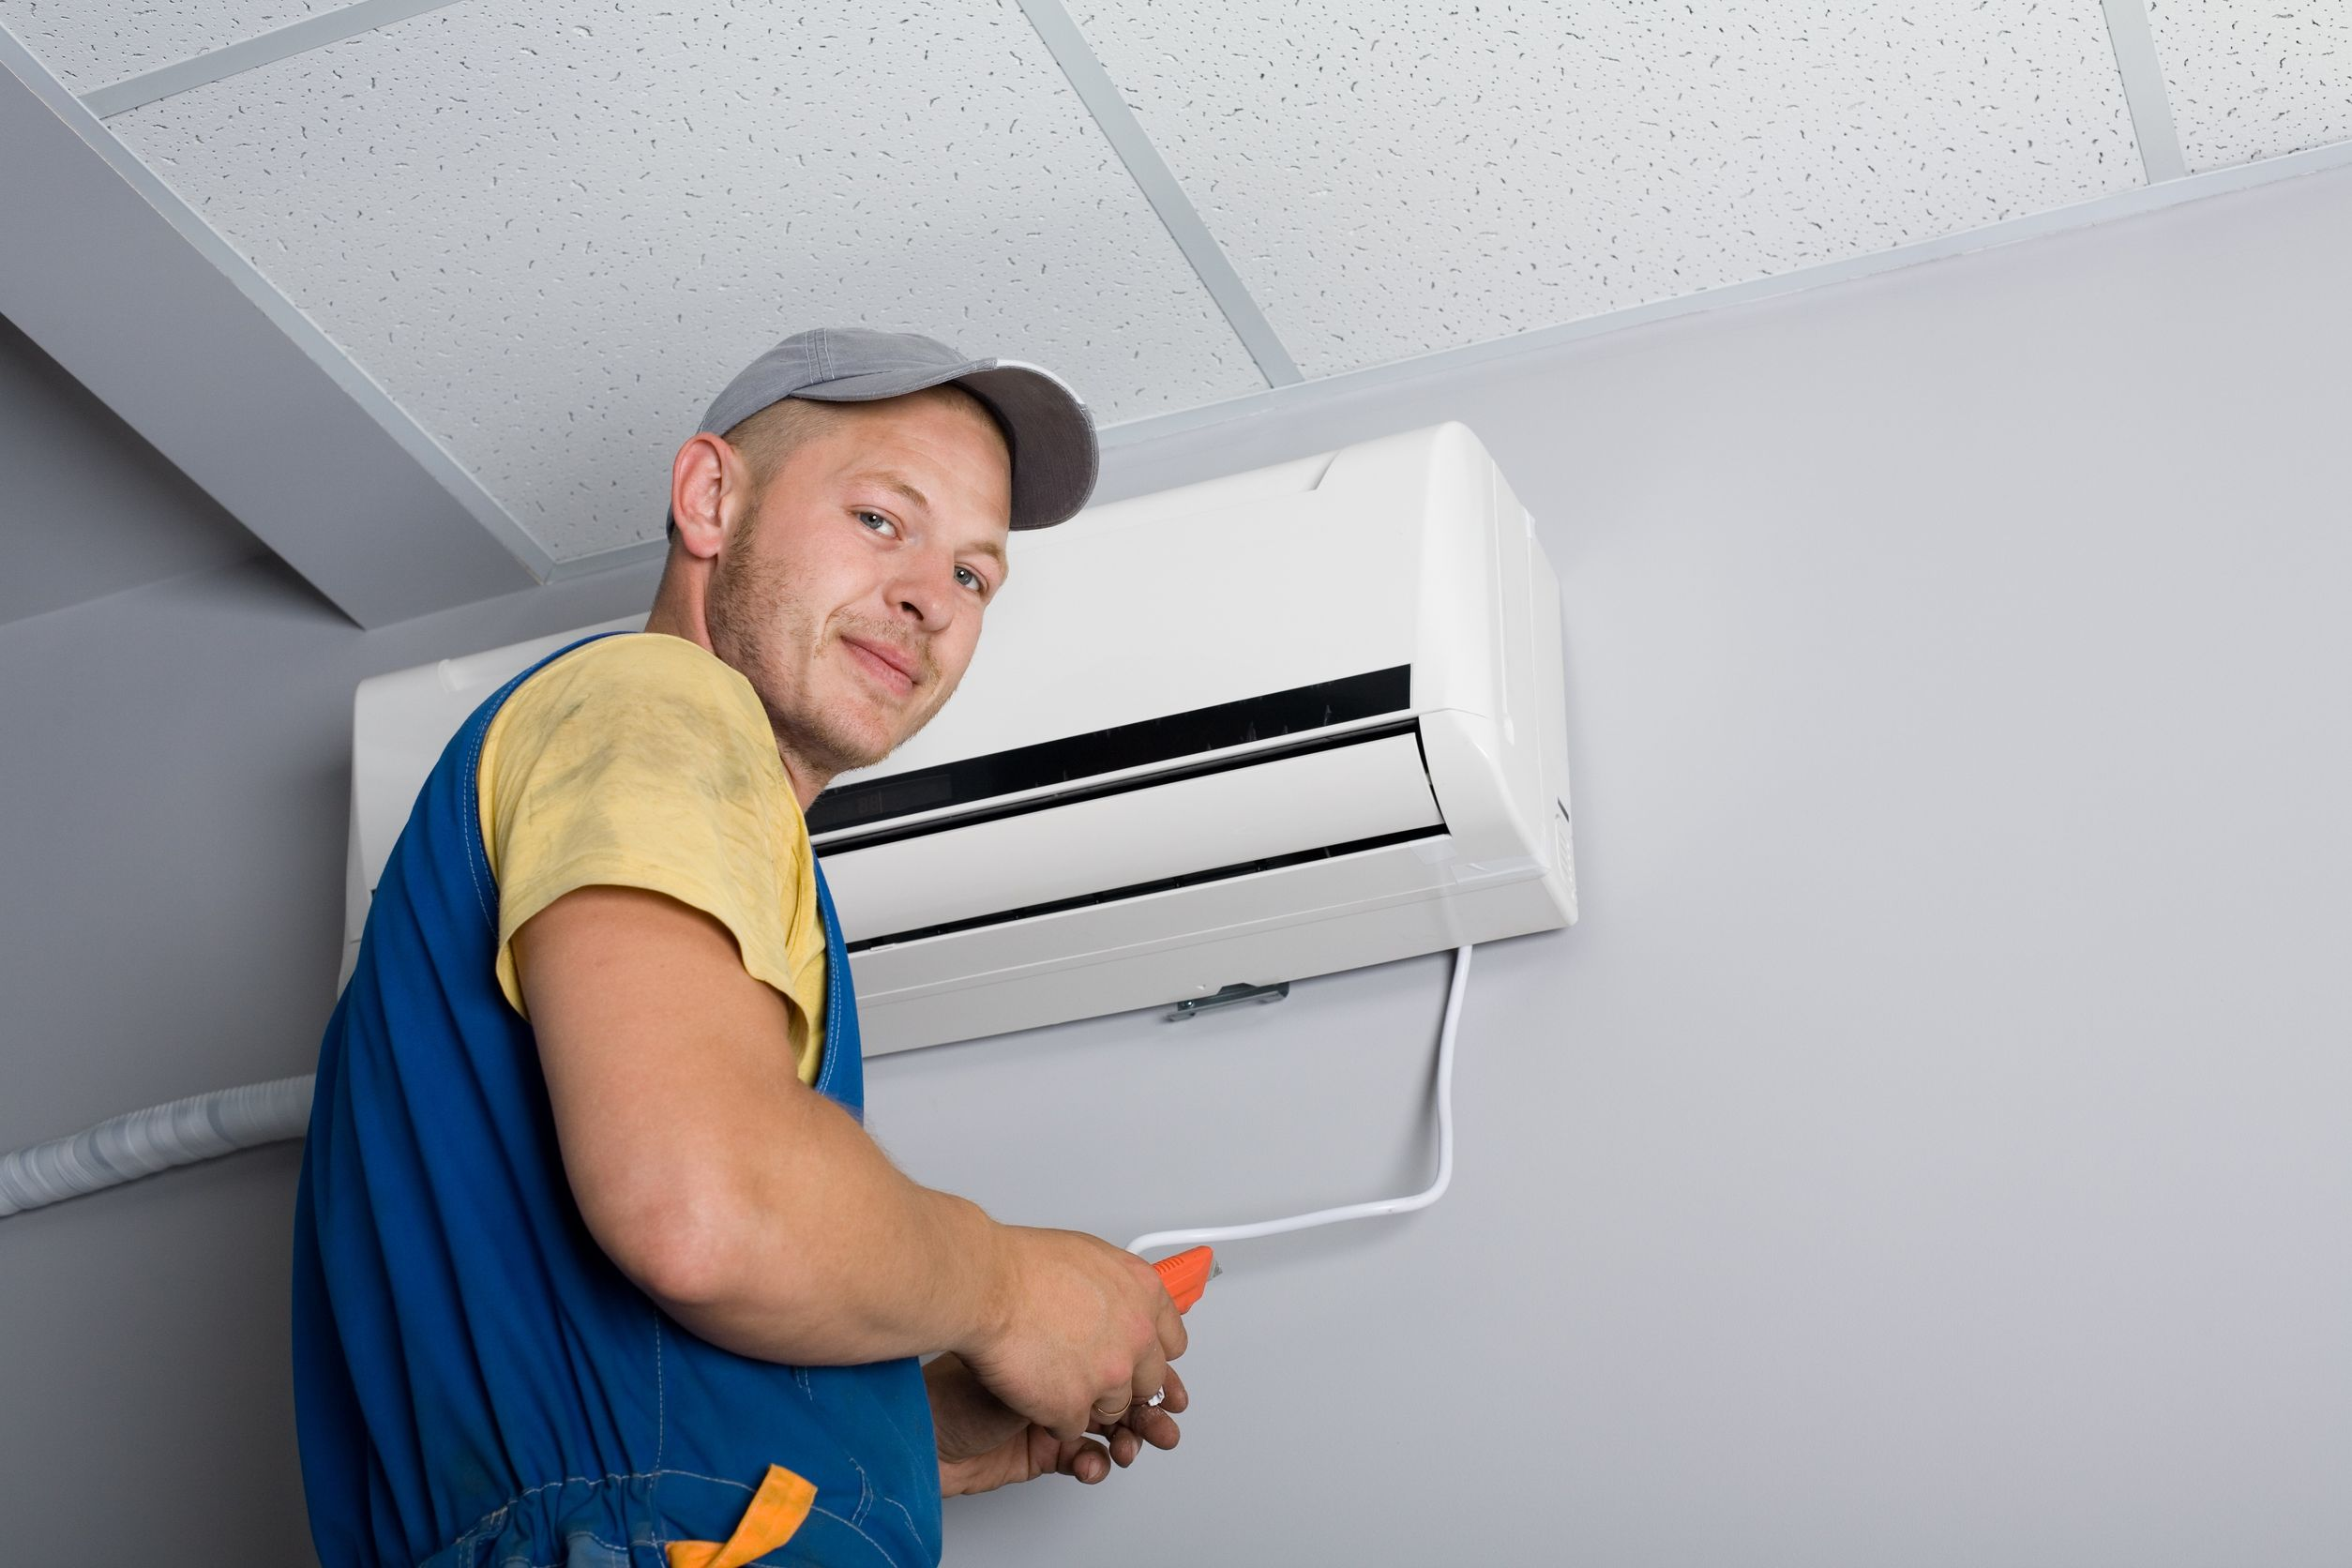 How To Service An Air Conditioner The Need For Choosing A Qualified Air Conditioning Installer